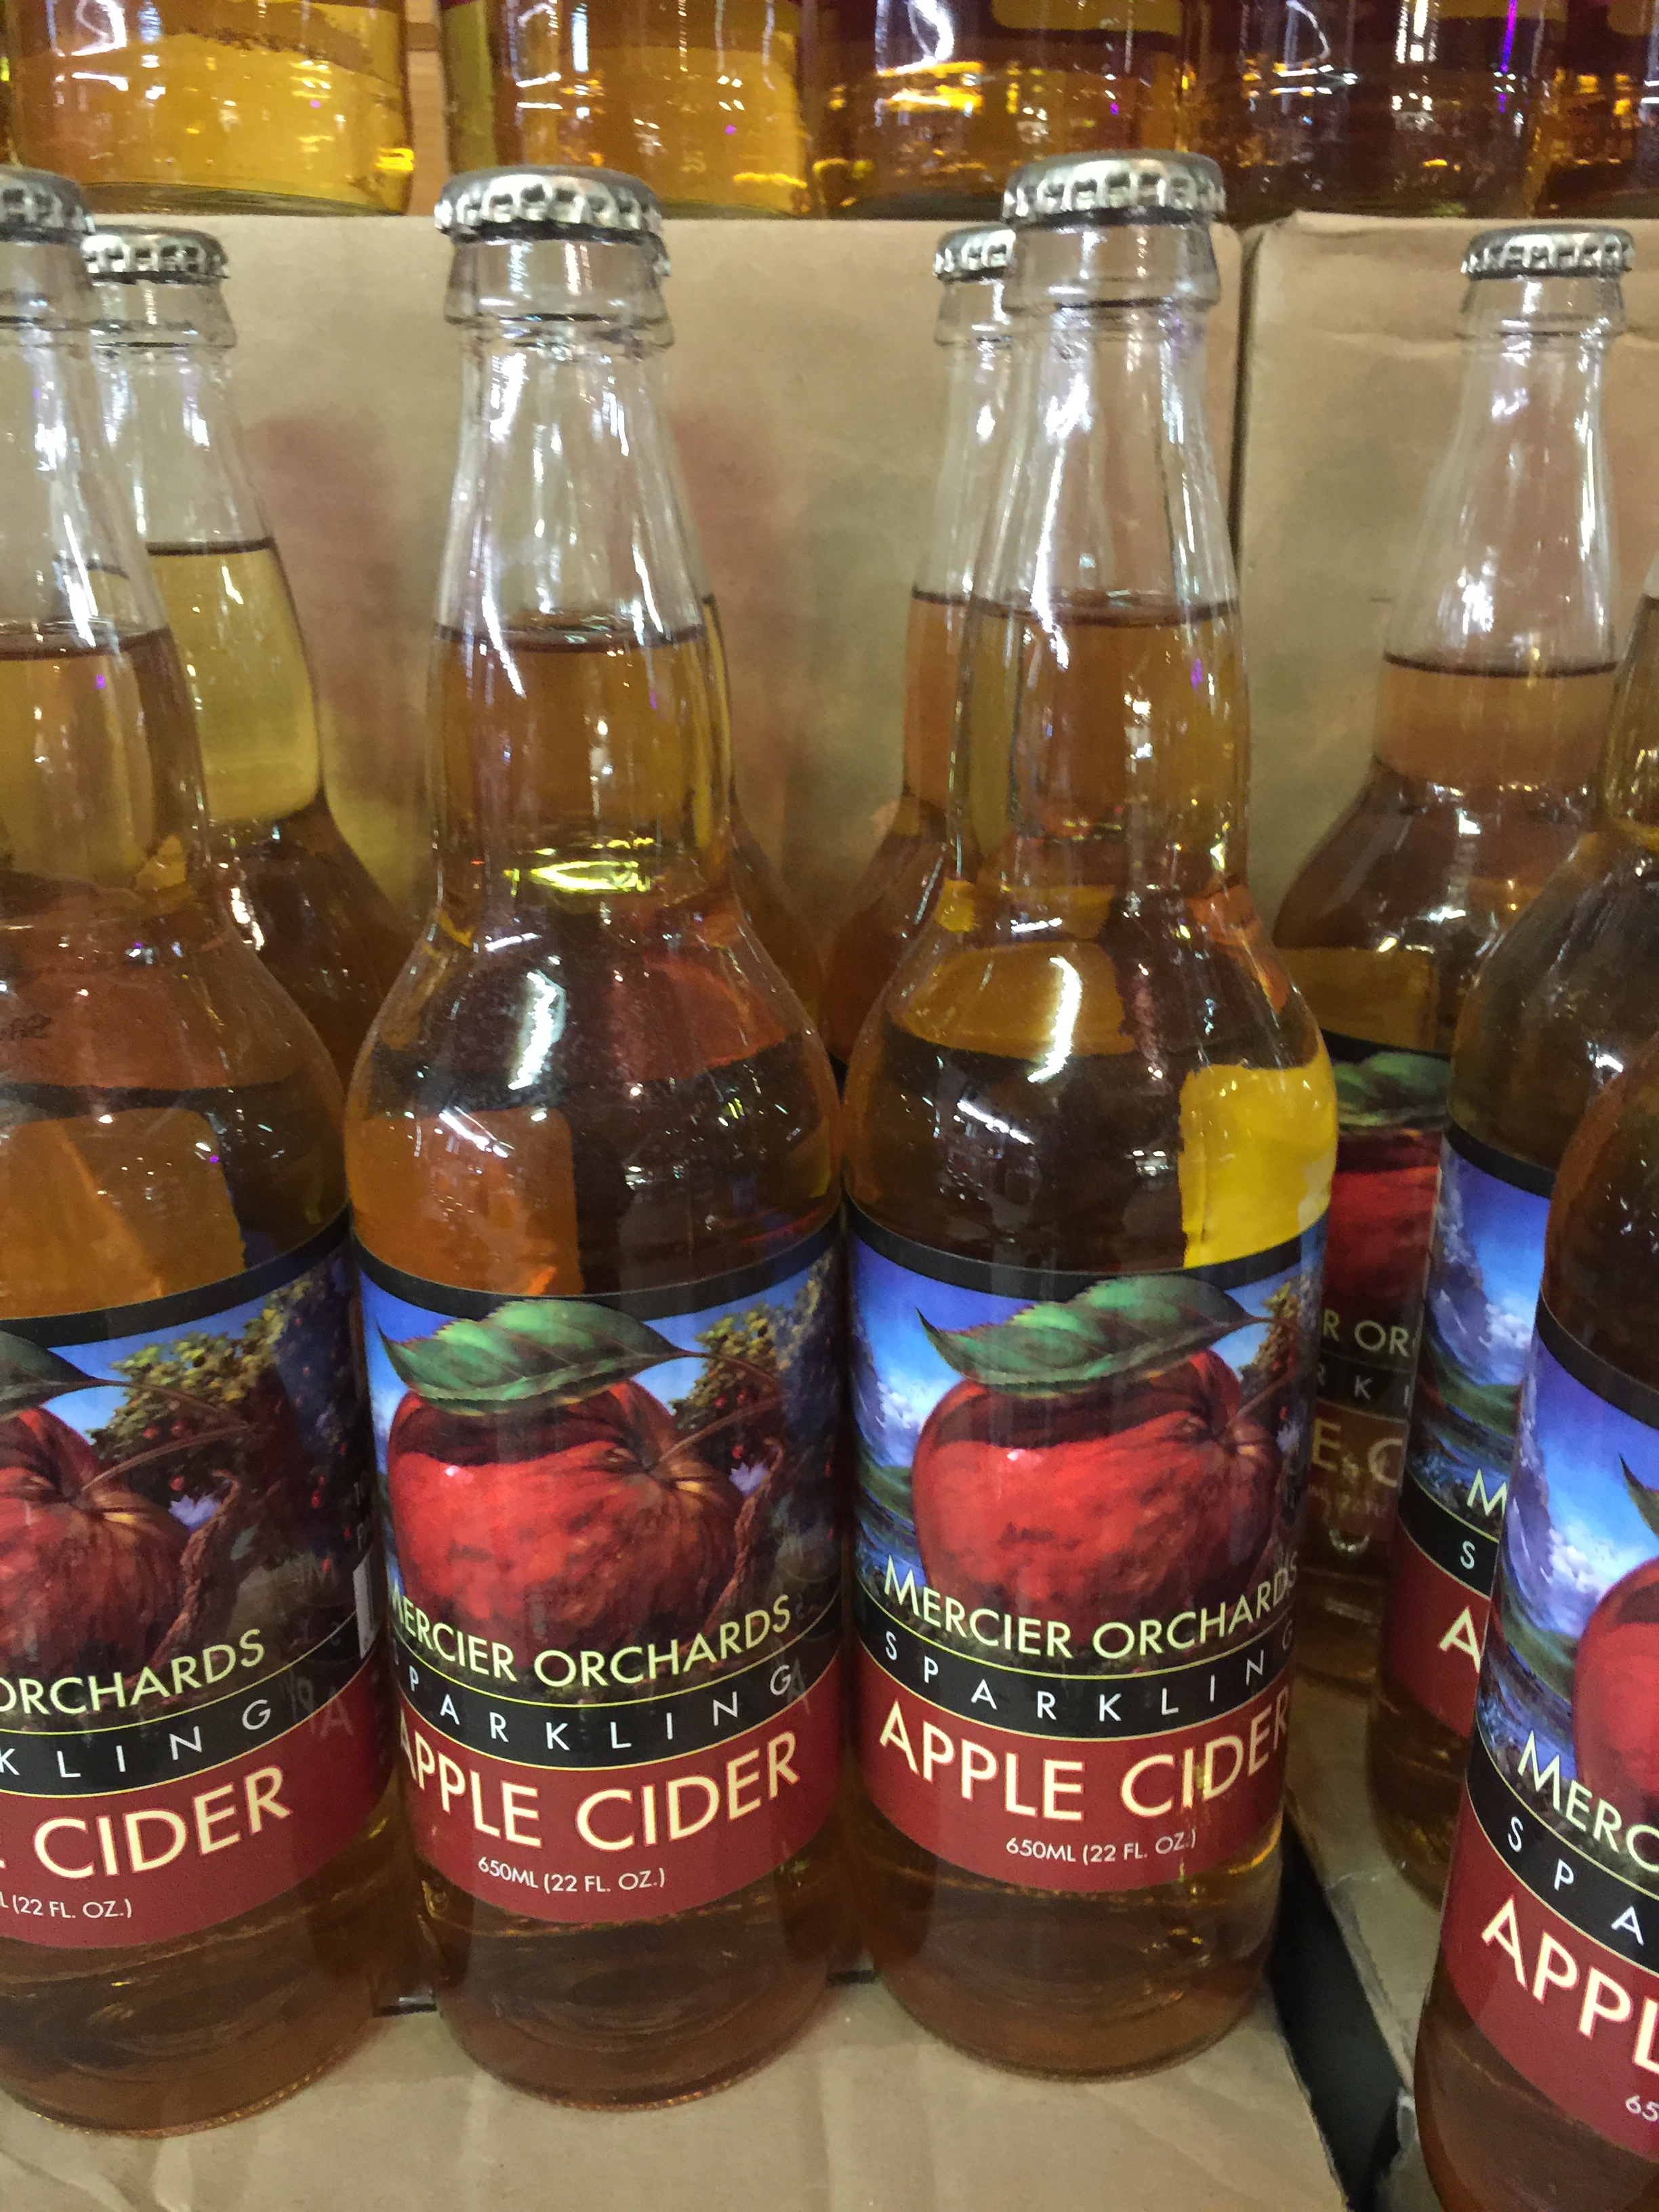 Sparkling Apple Cider - Mercier Orchards